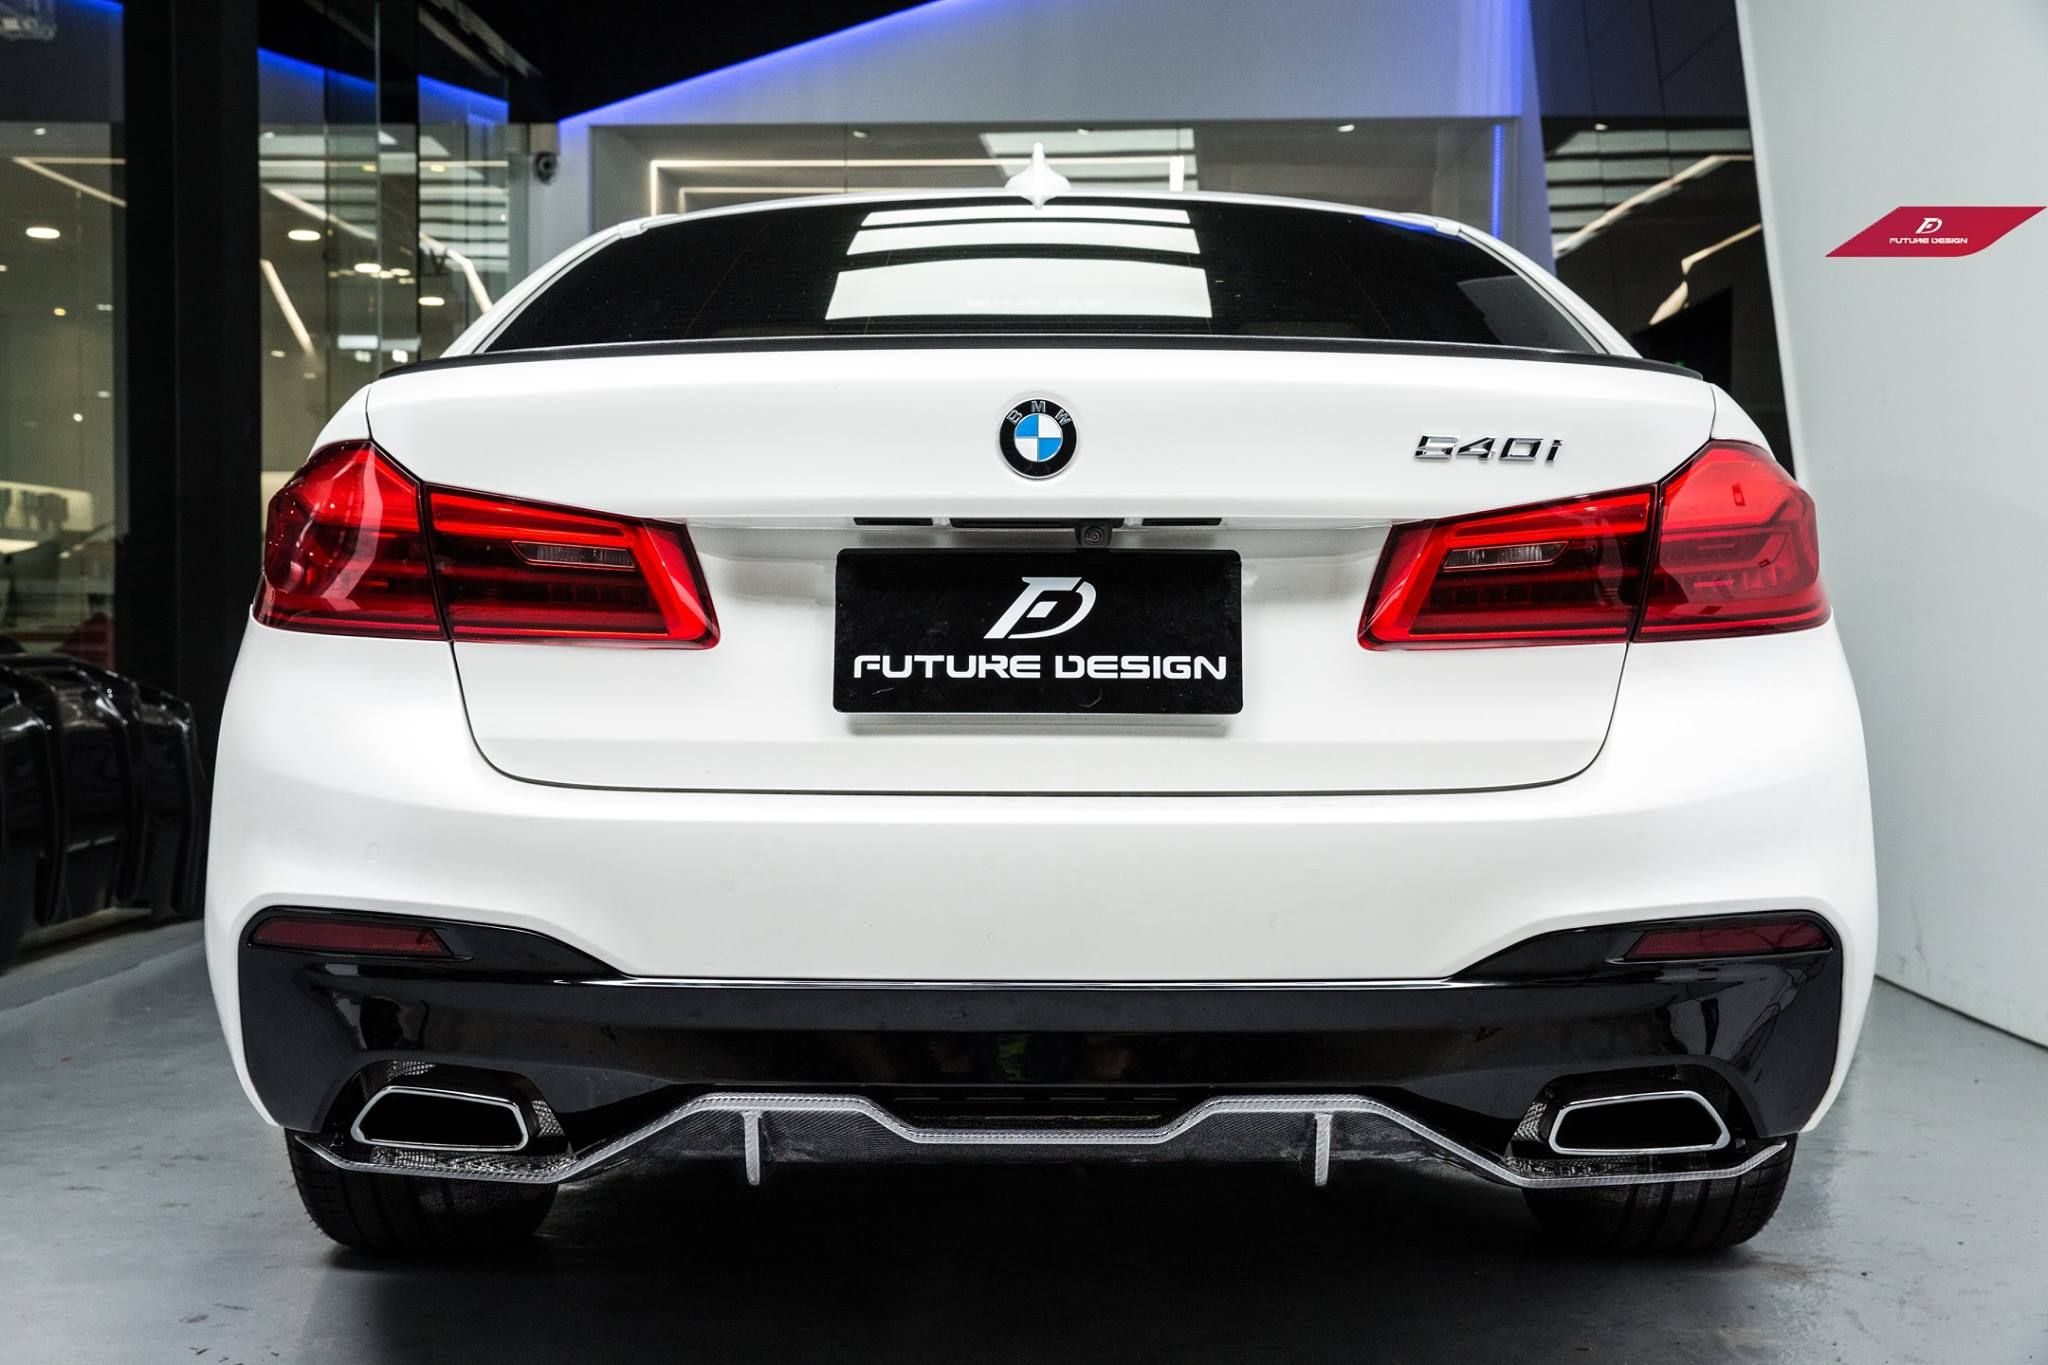 Bmw G30 5 Series M Performance Style Carbon Fiber Rear Diffuser